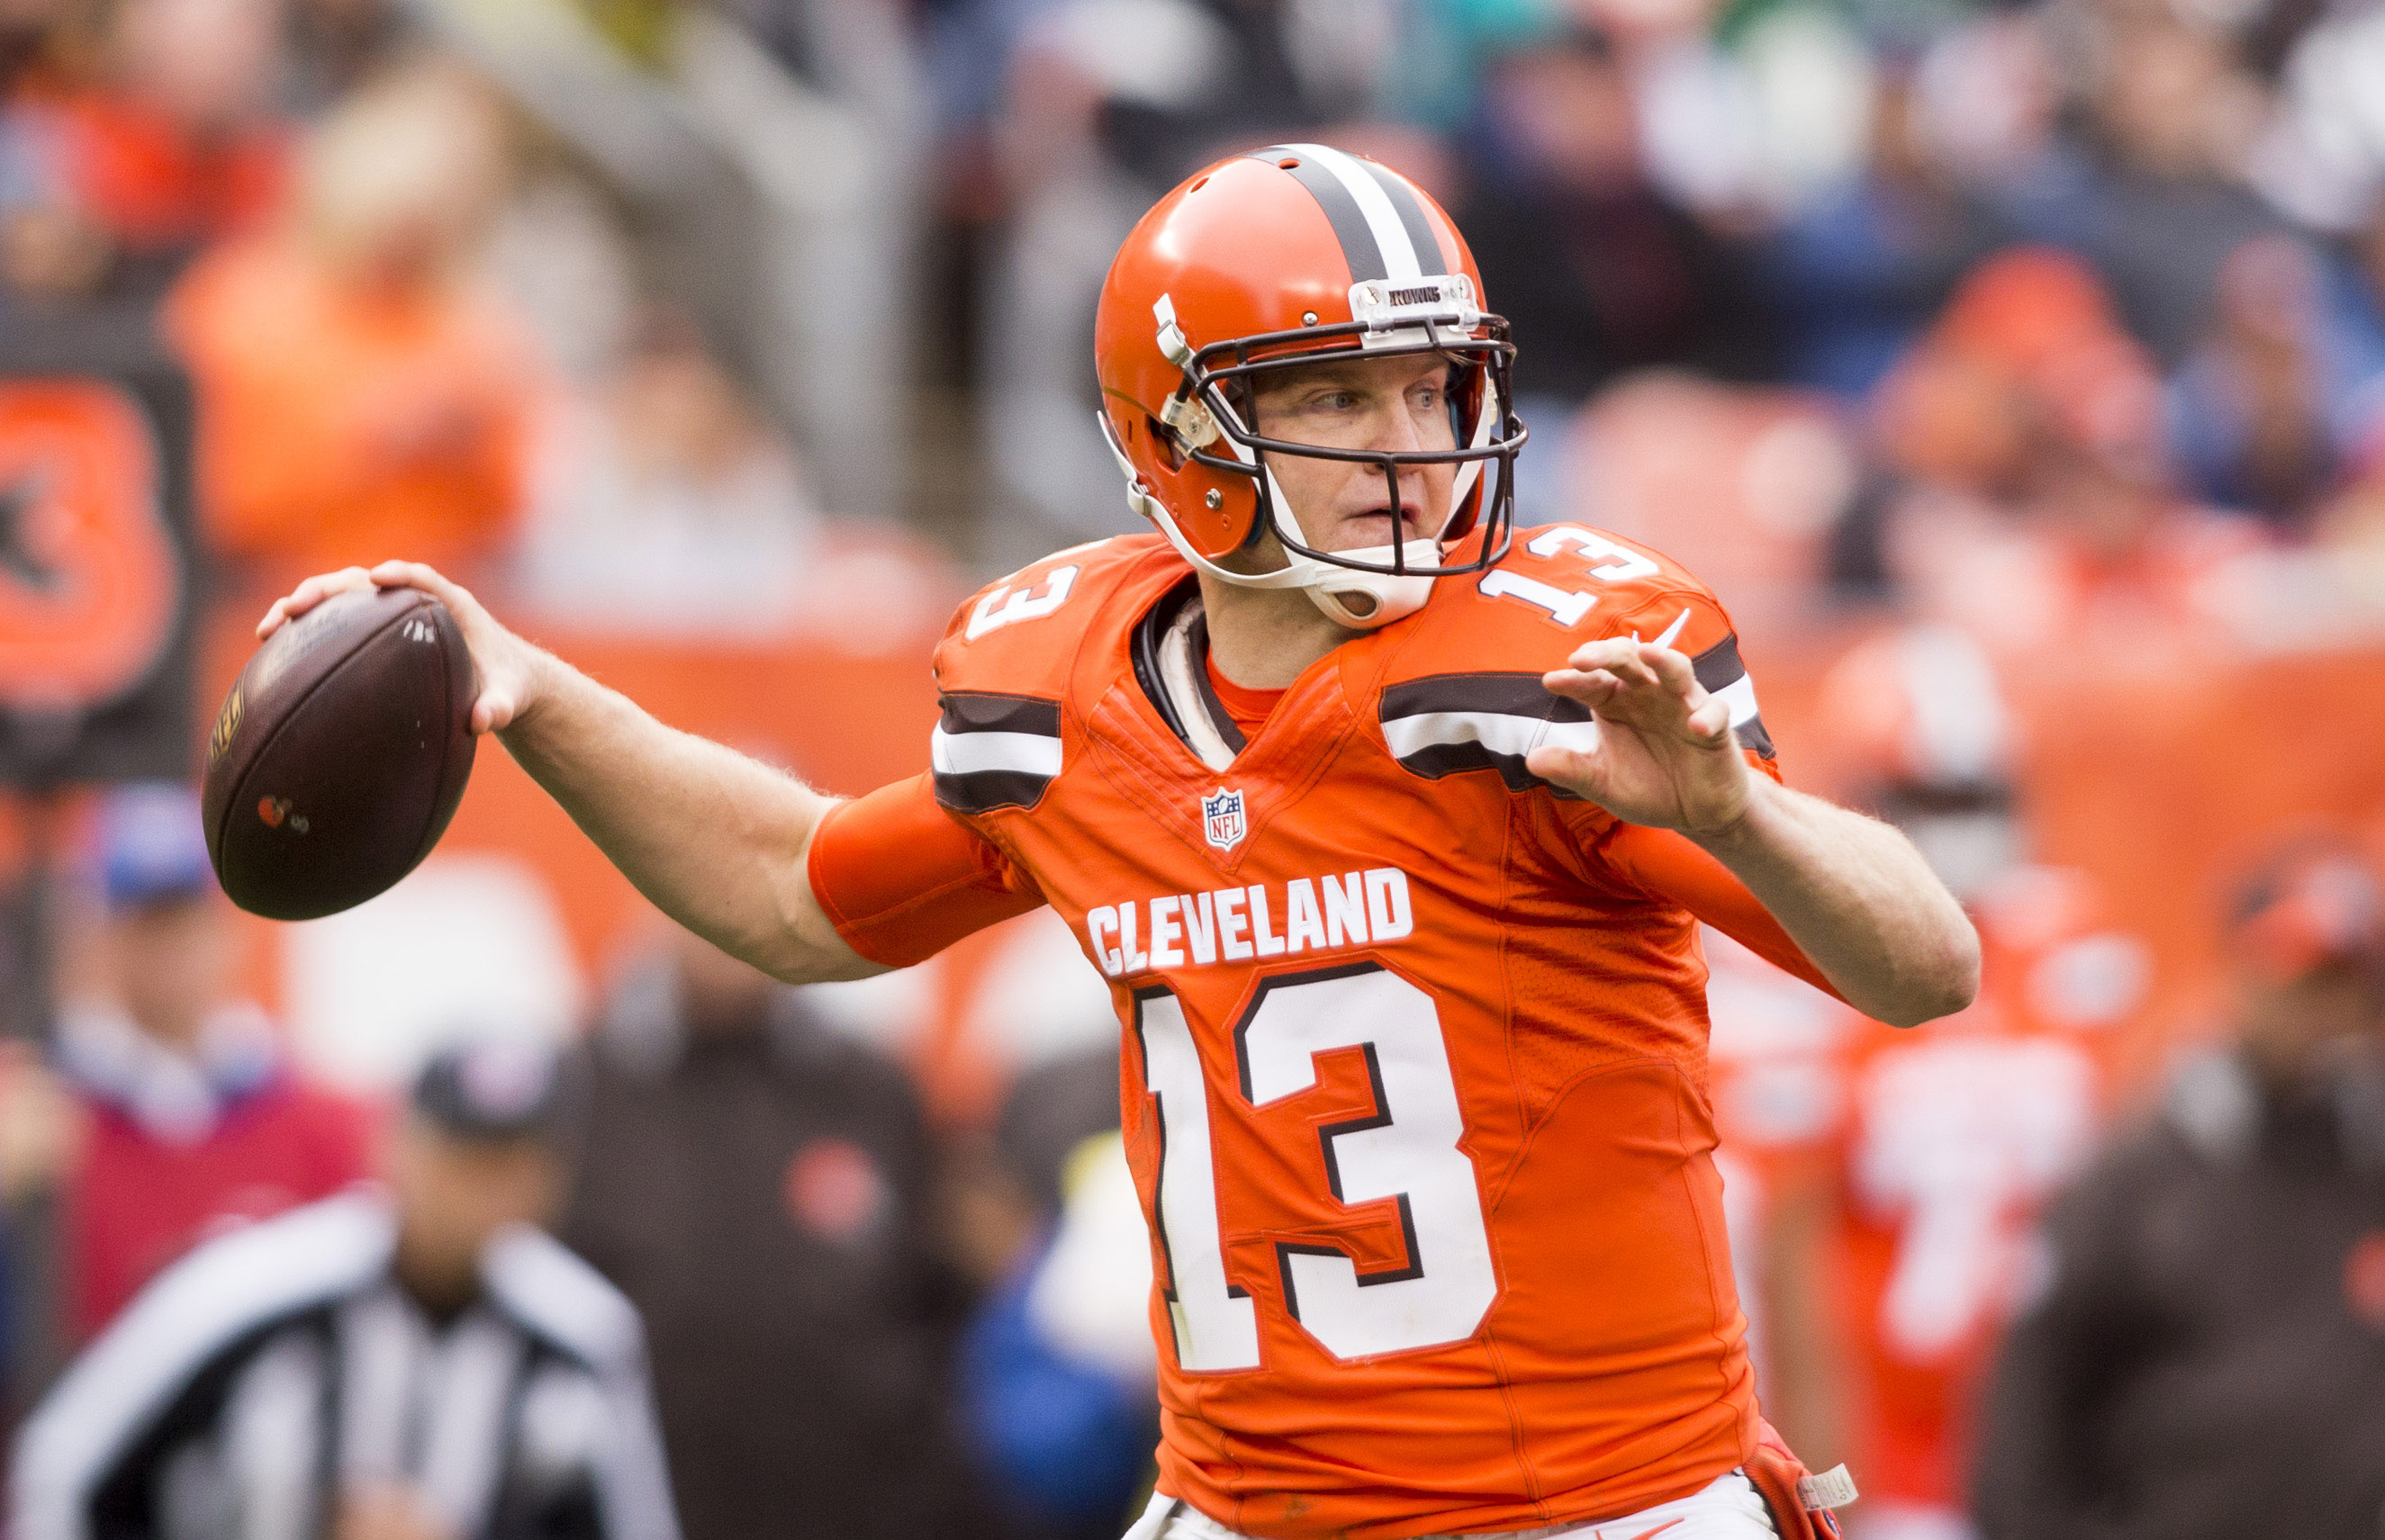 9643547-nfl-new-york-jets-at-cleveland-browns